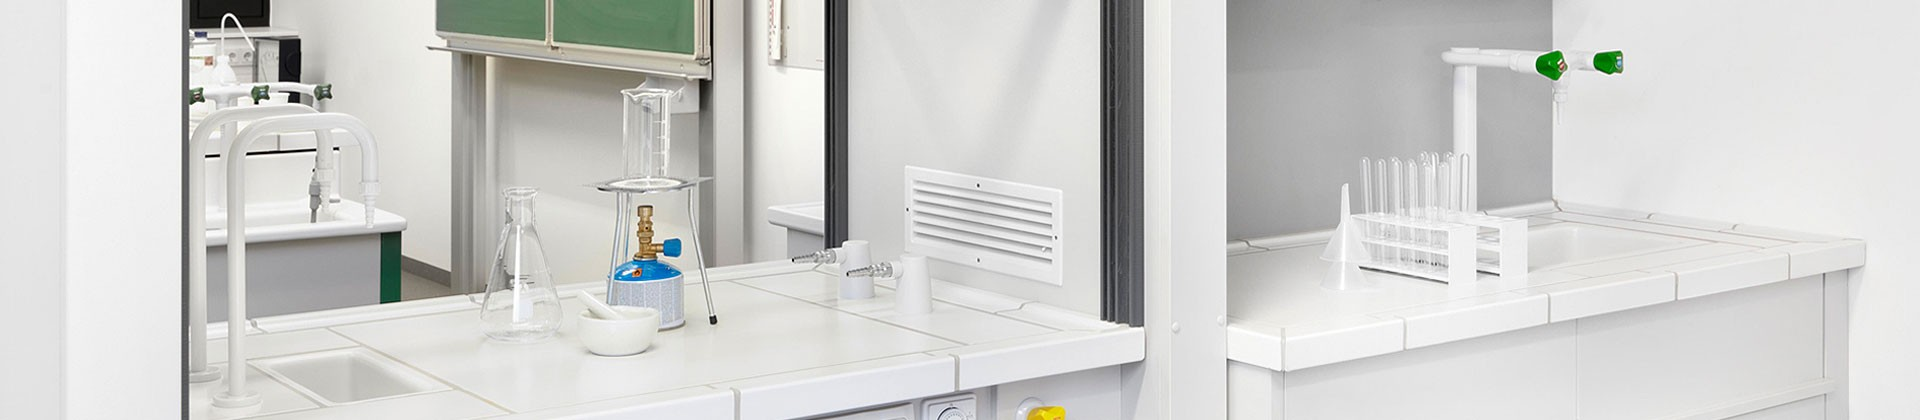 Lab sinks and fittings